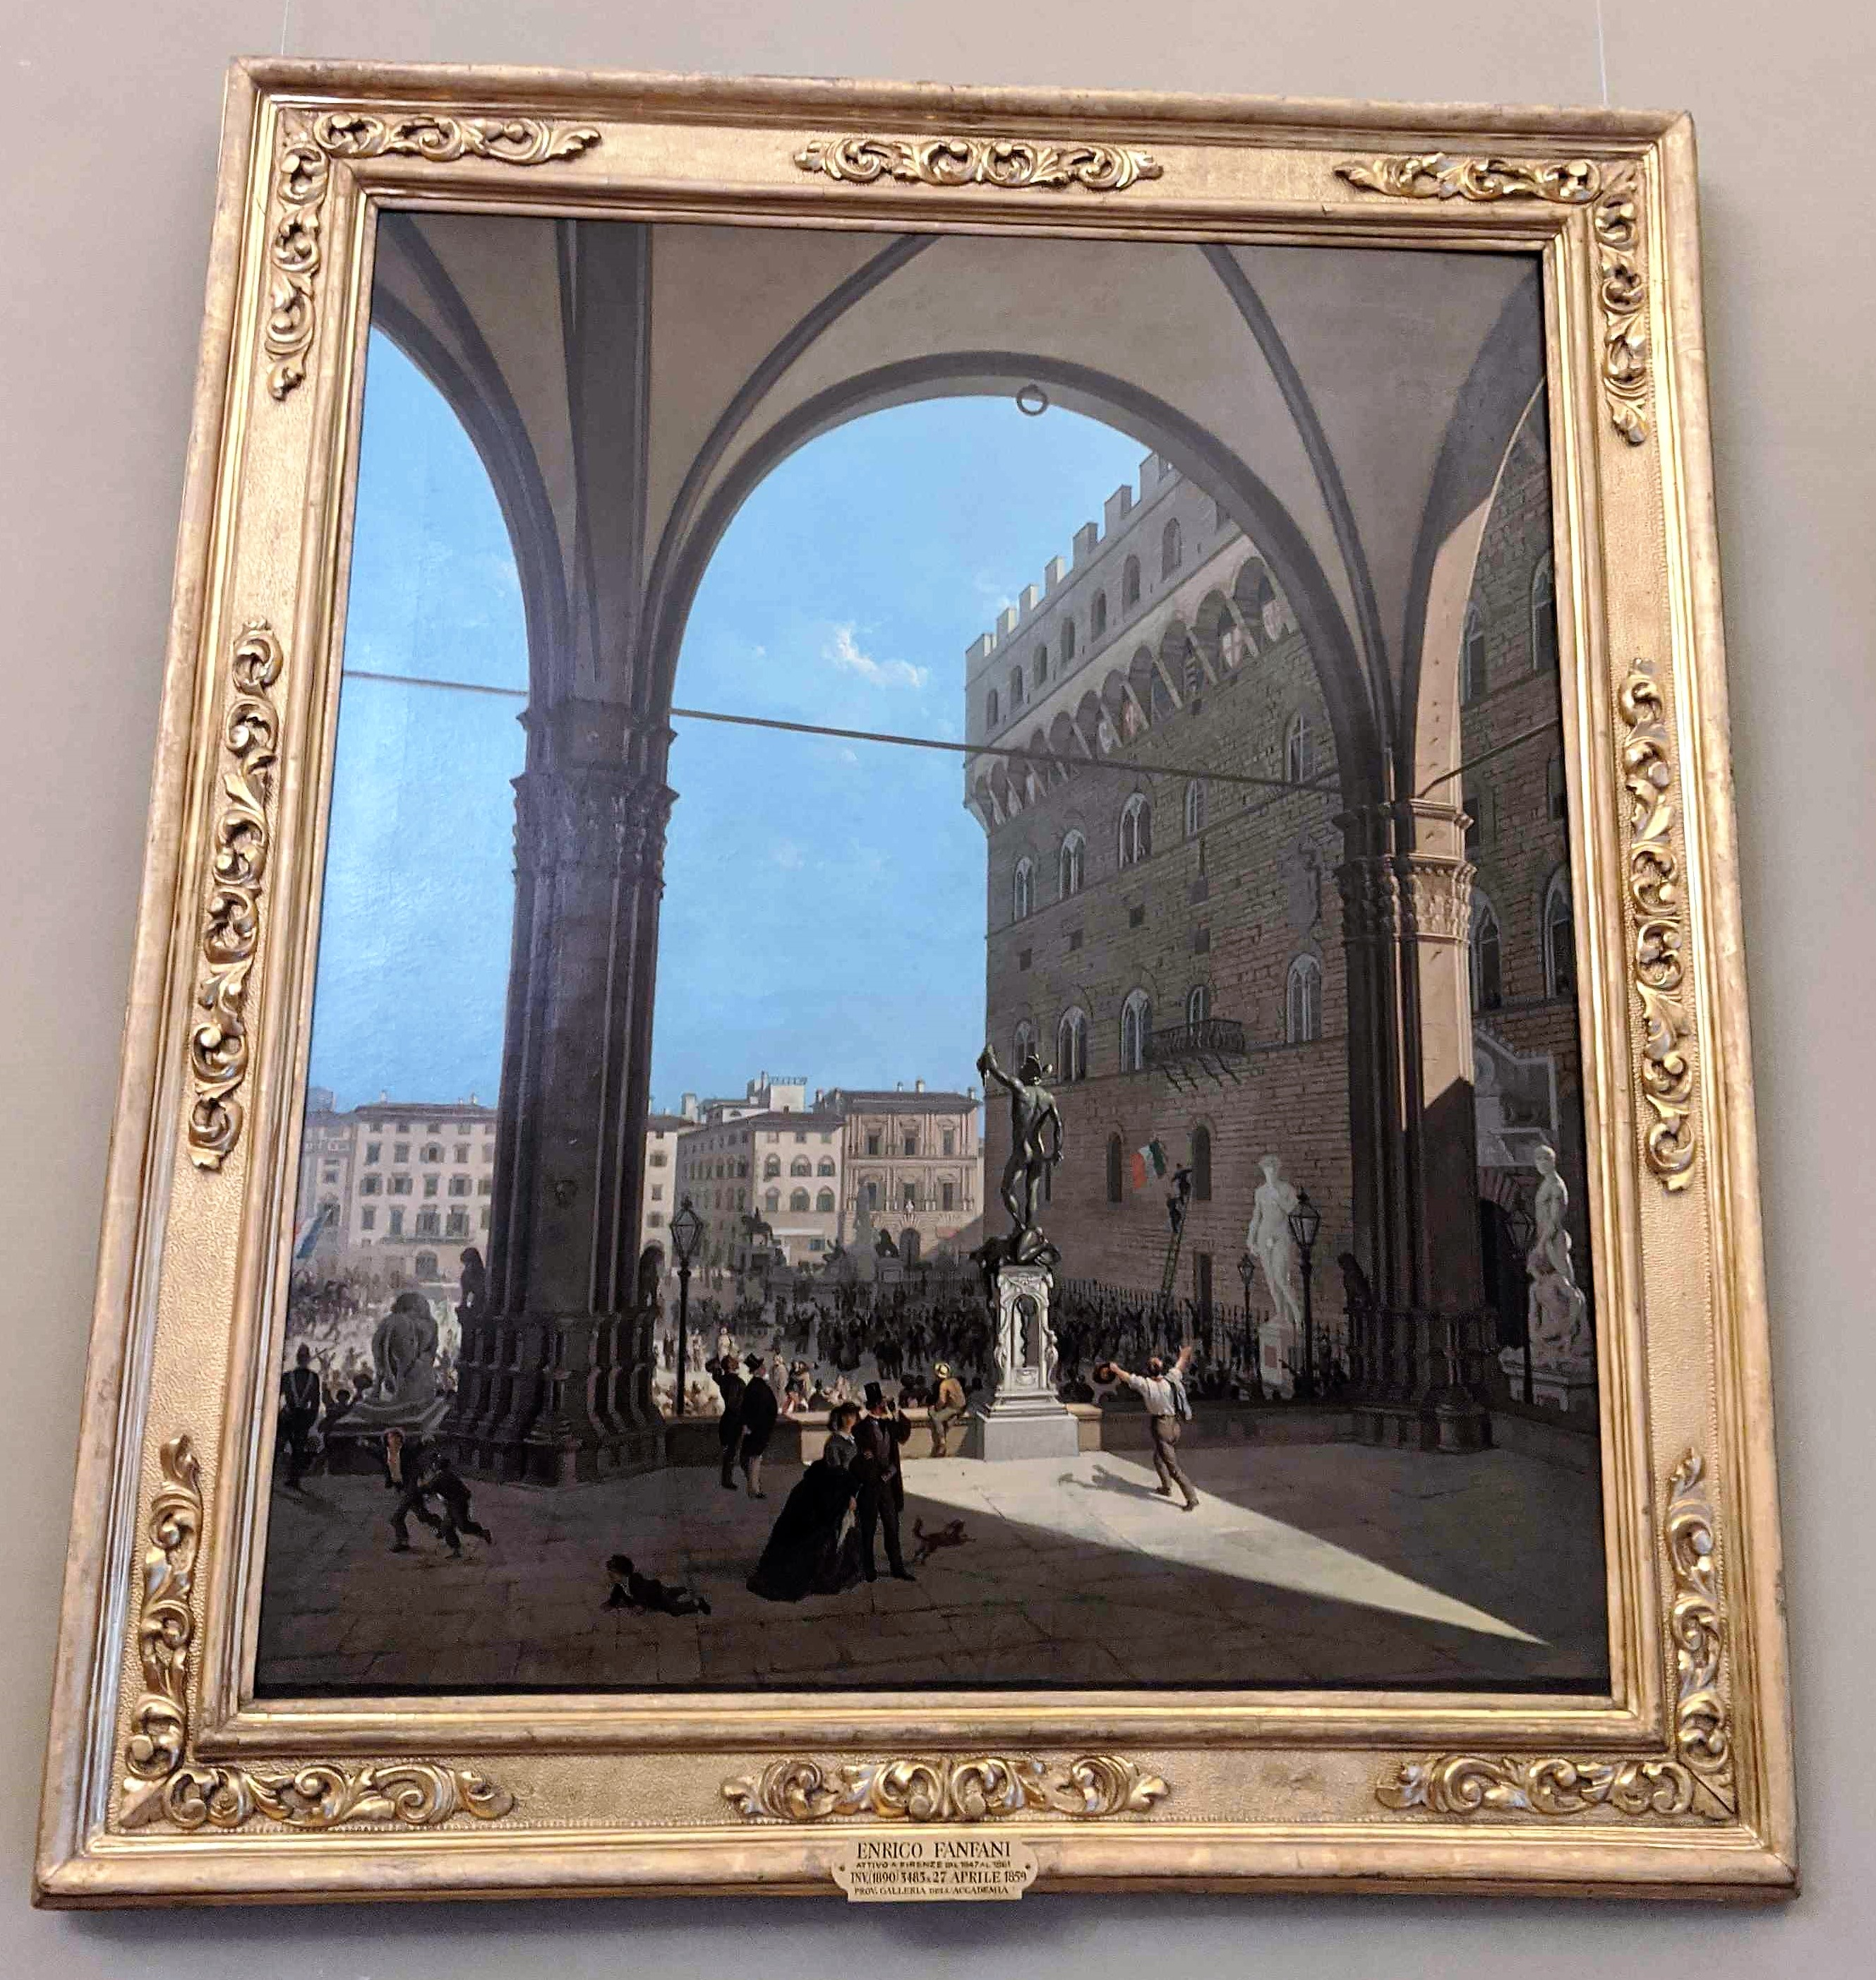 The morning of 27 April 1859 Enrico Alessandro Fanfani 7 lesser-known paintings at Pitti Palace's Gallery of Modern Art